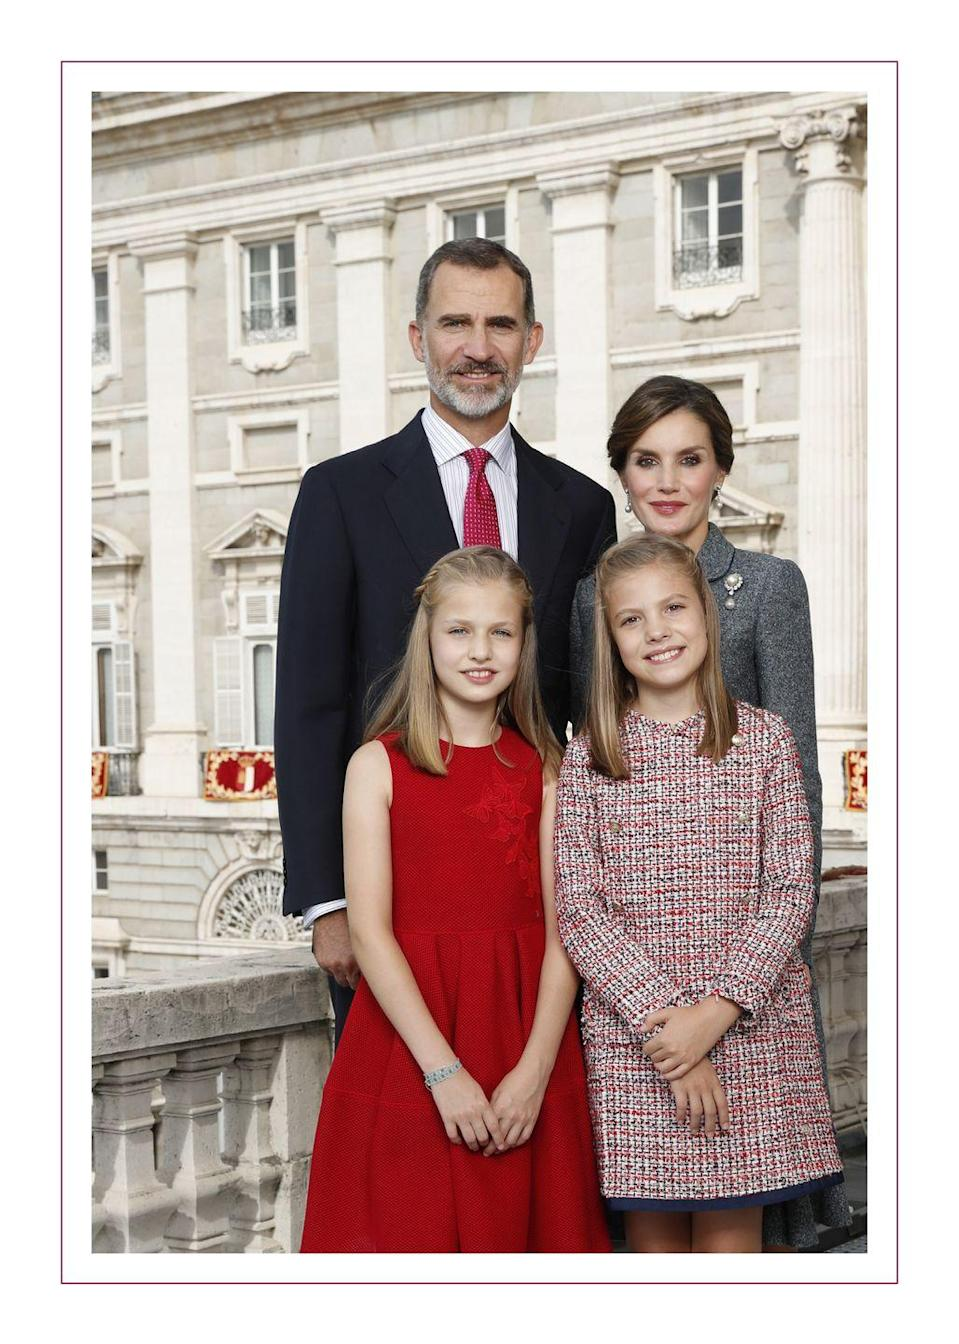 """<p>Queen Letizia <a href=""""https://www.townandcountrymag.com/society/tradition/g14416793/spanish-royal-family-christmas-cards/"""" rel=""""nofollow noopener"""" target=""""_blank"""" data-ylk=""""slk:posed for a Christmas portrait"""" class=""""link rapid-noclick-resp"""">posed for a Christmas portrait</a> alongside her husband, Felipe, and their daughters Leonor and Sofia. </p>"""